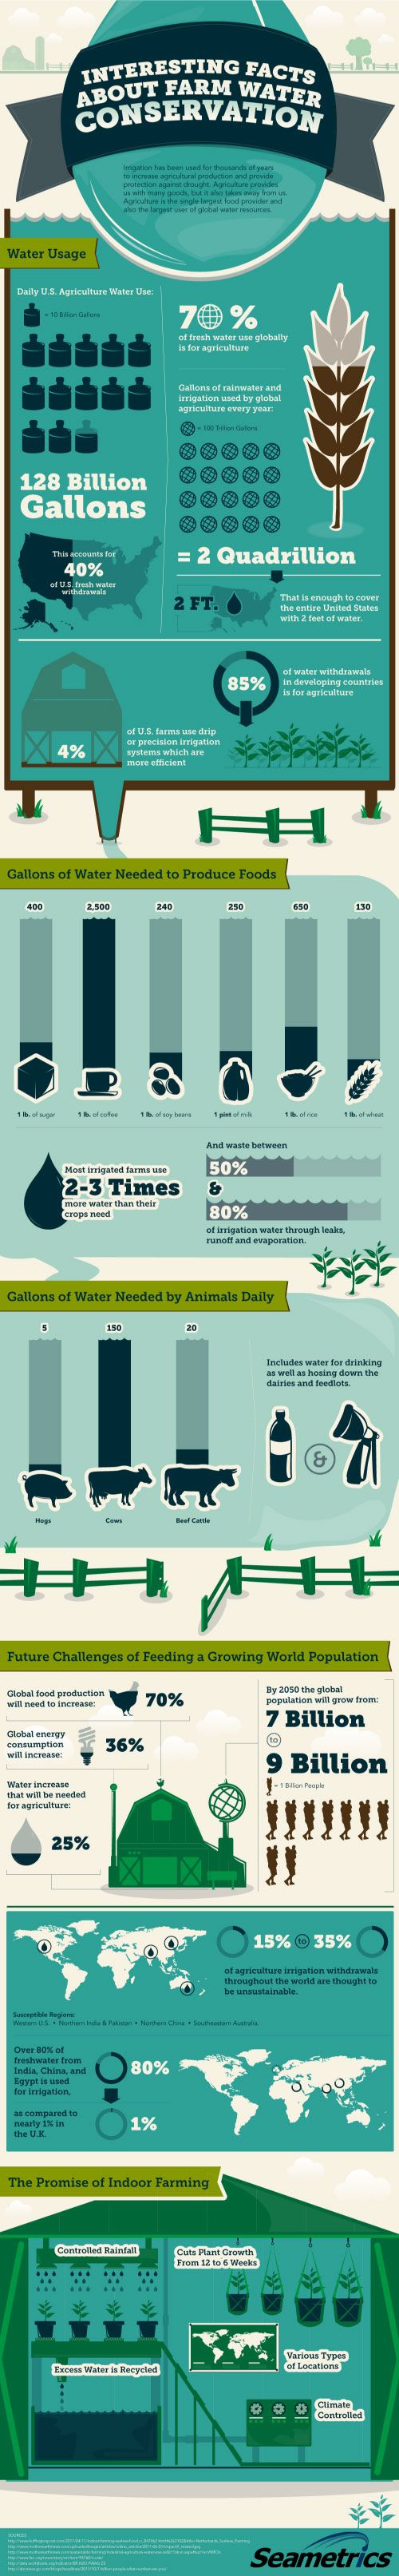 Interesting Facts About Farm Water Conservation #viqua